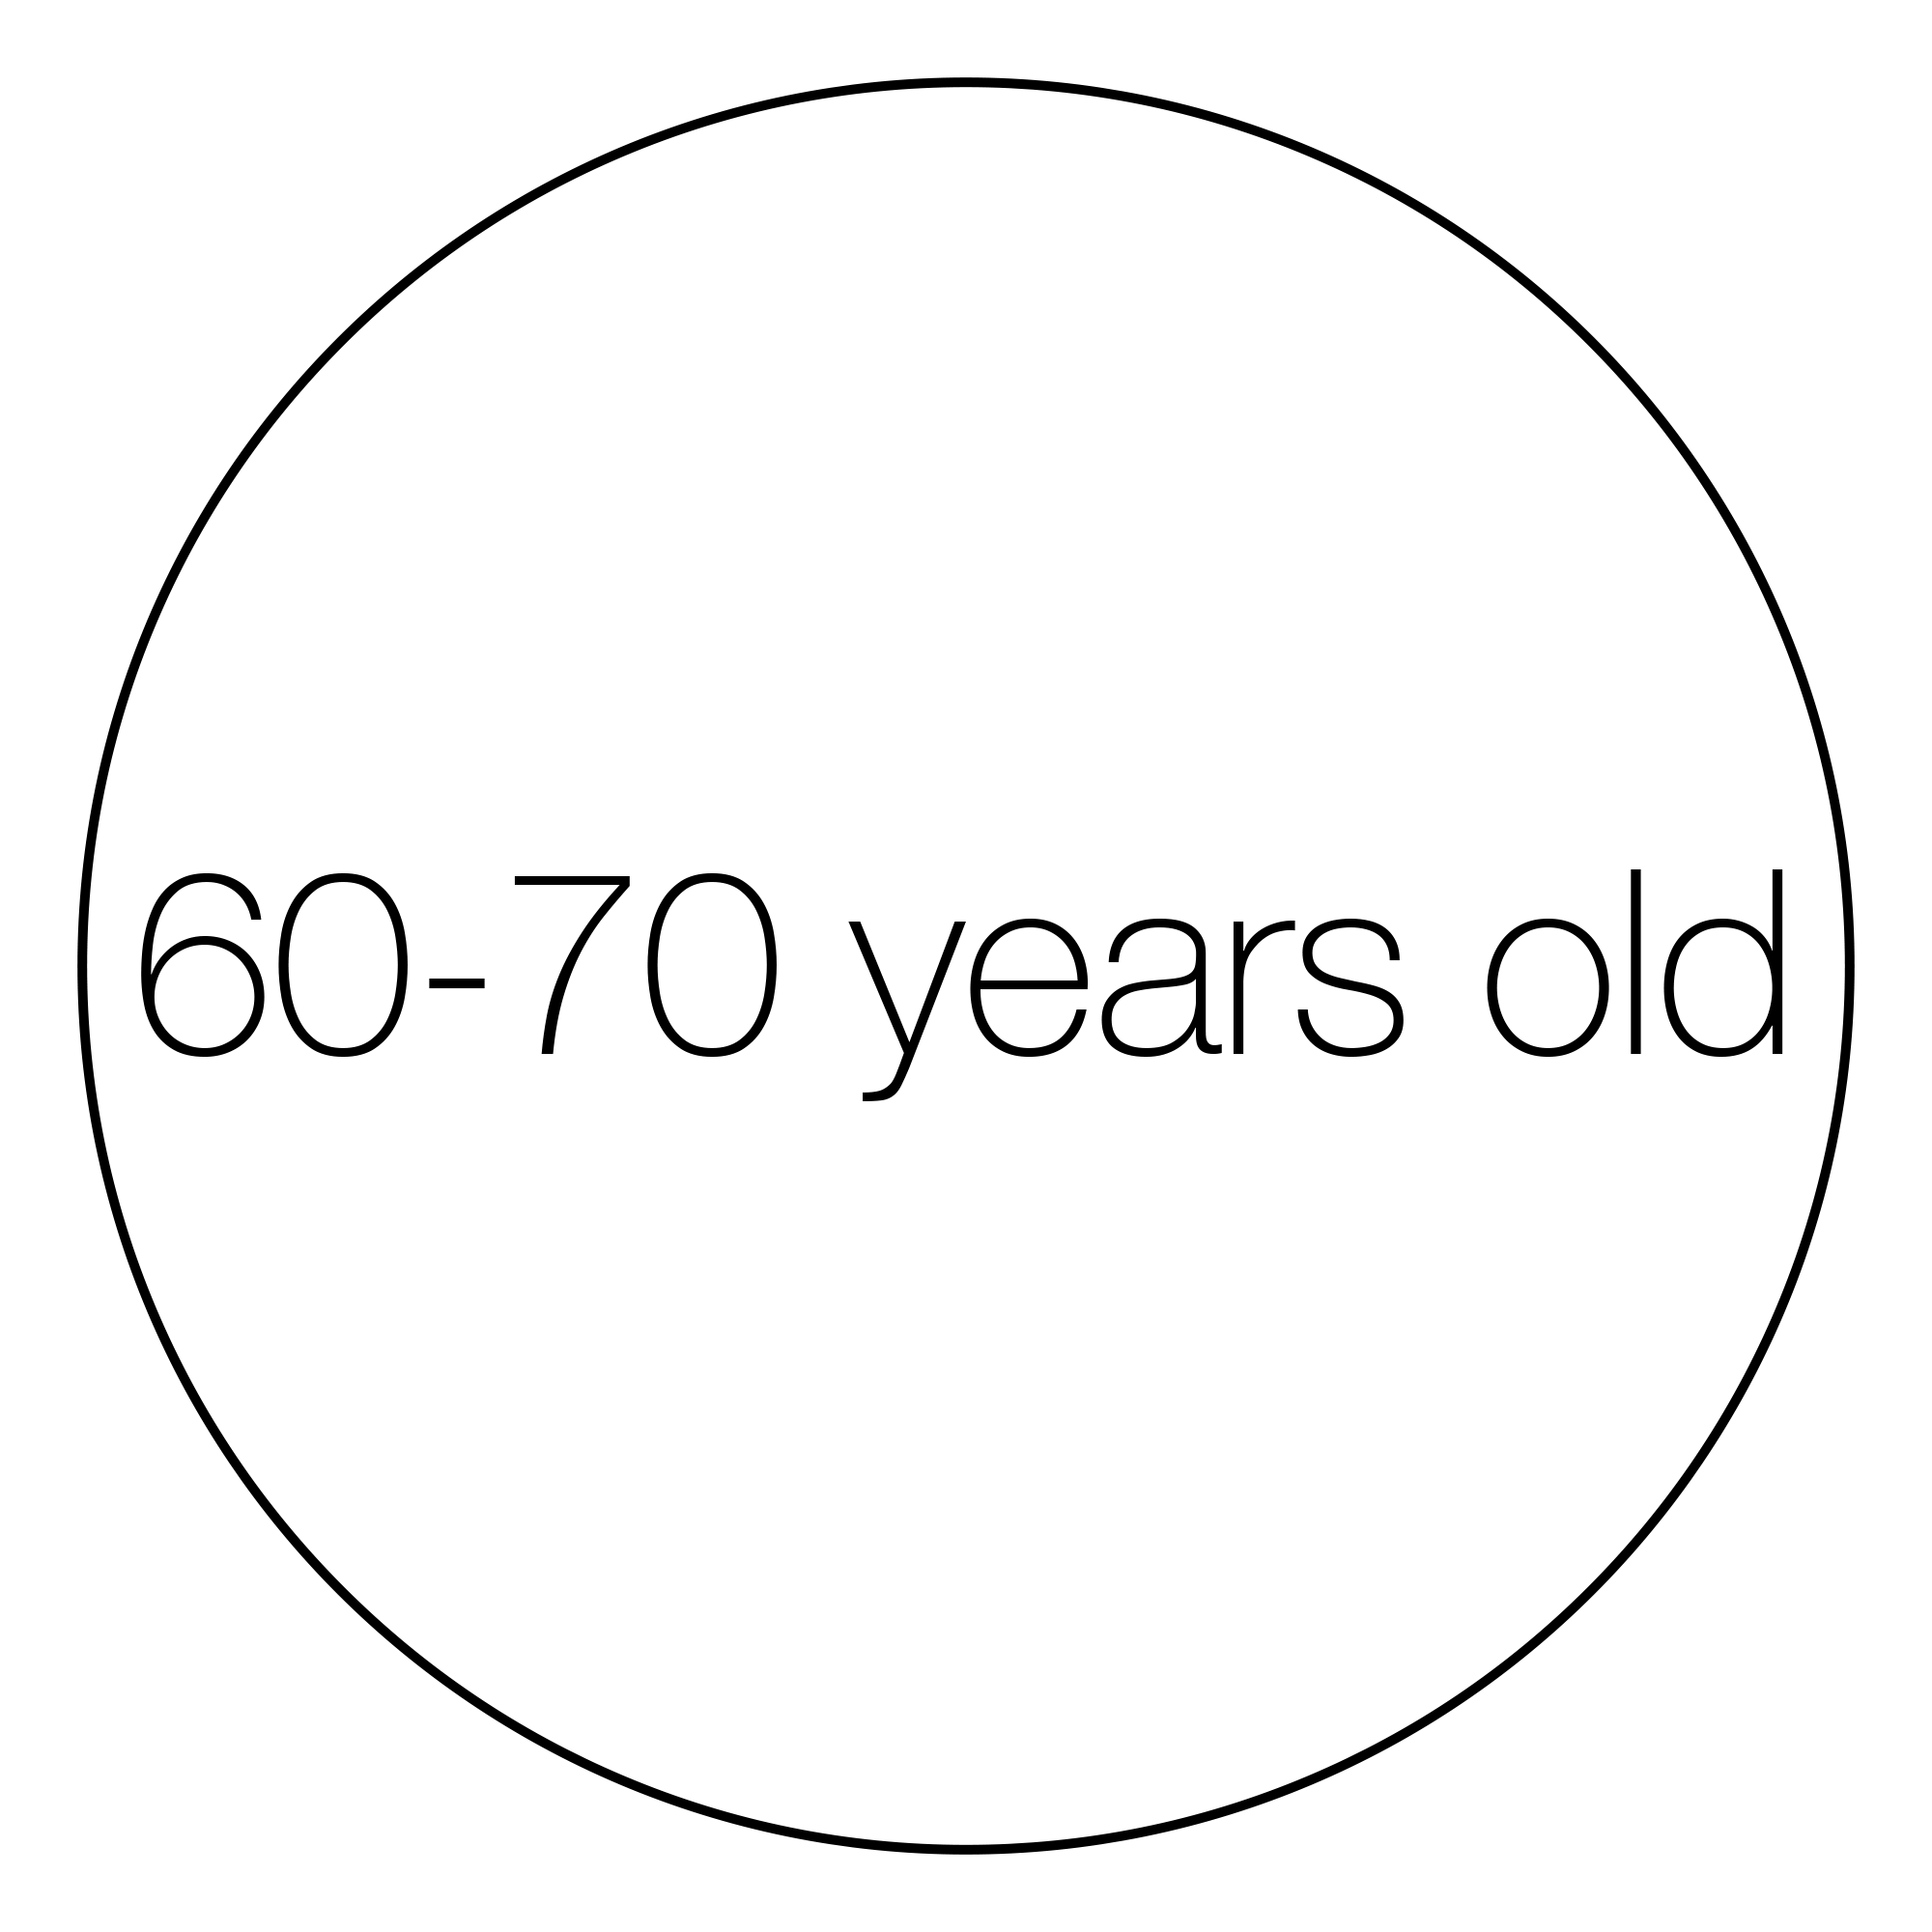 attribute-age-60-70-years-old